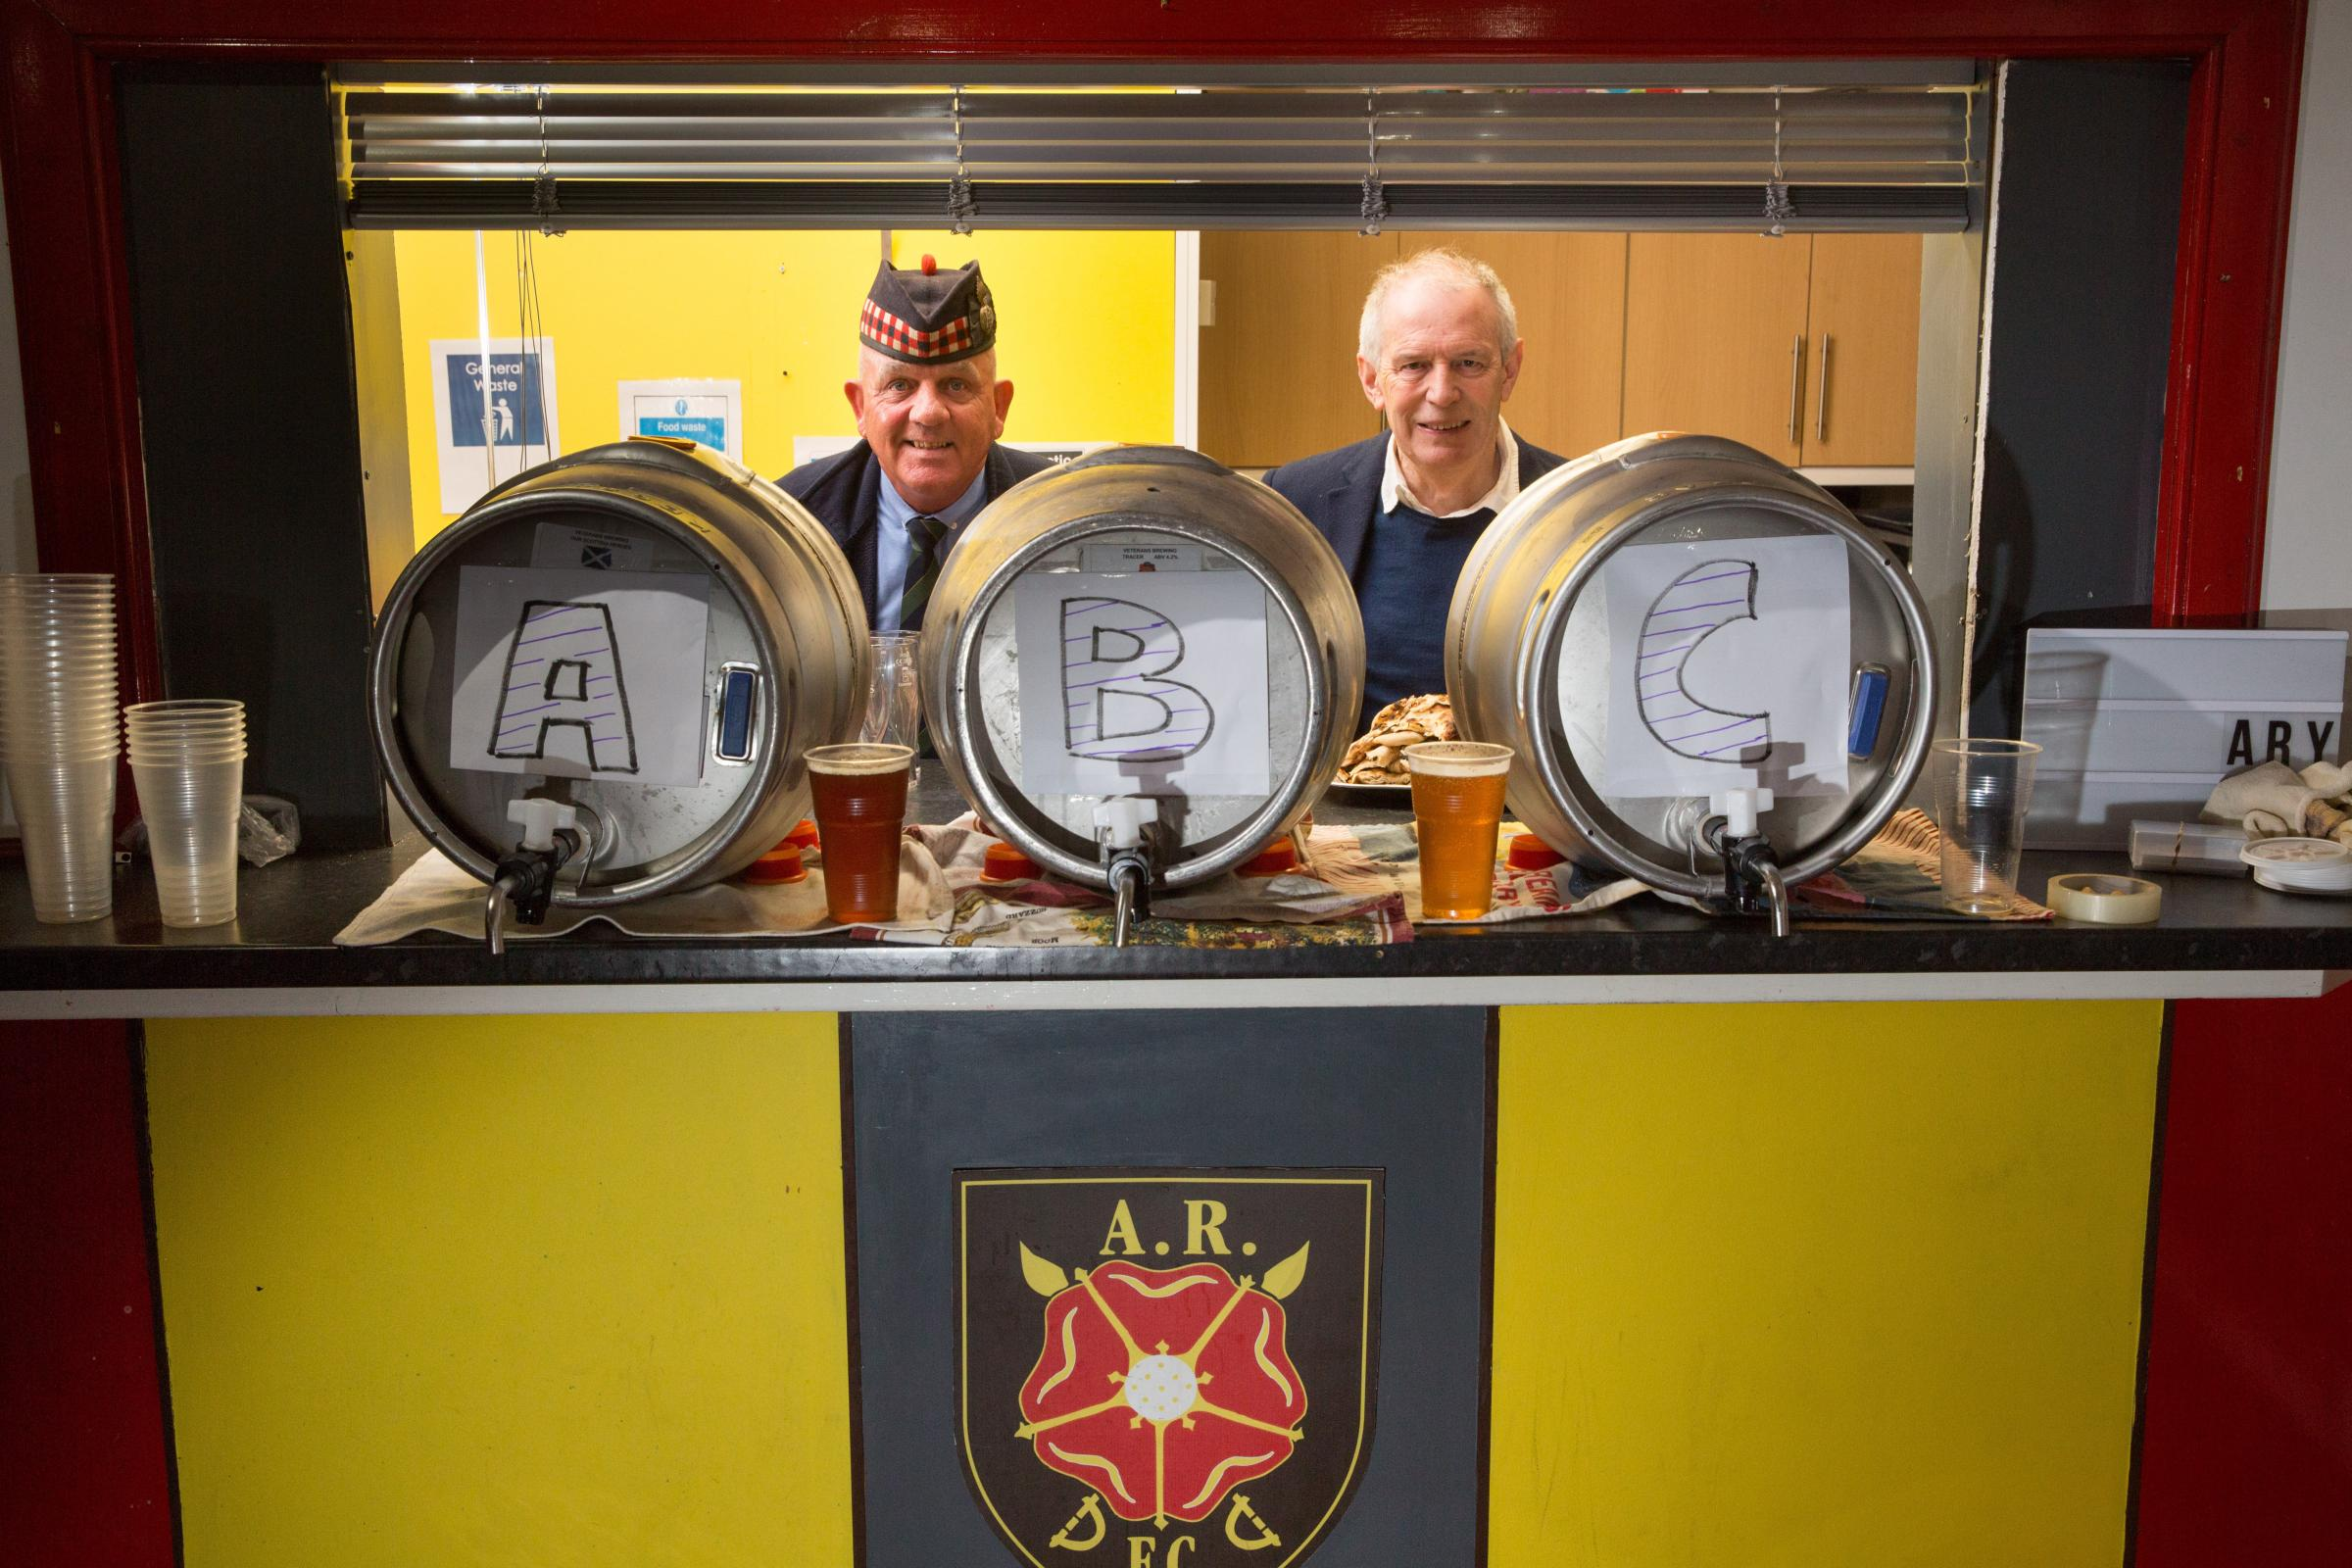 Albion Rovers and Veterans Brewing team up for beer deal